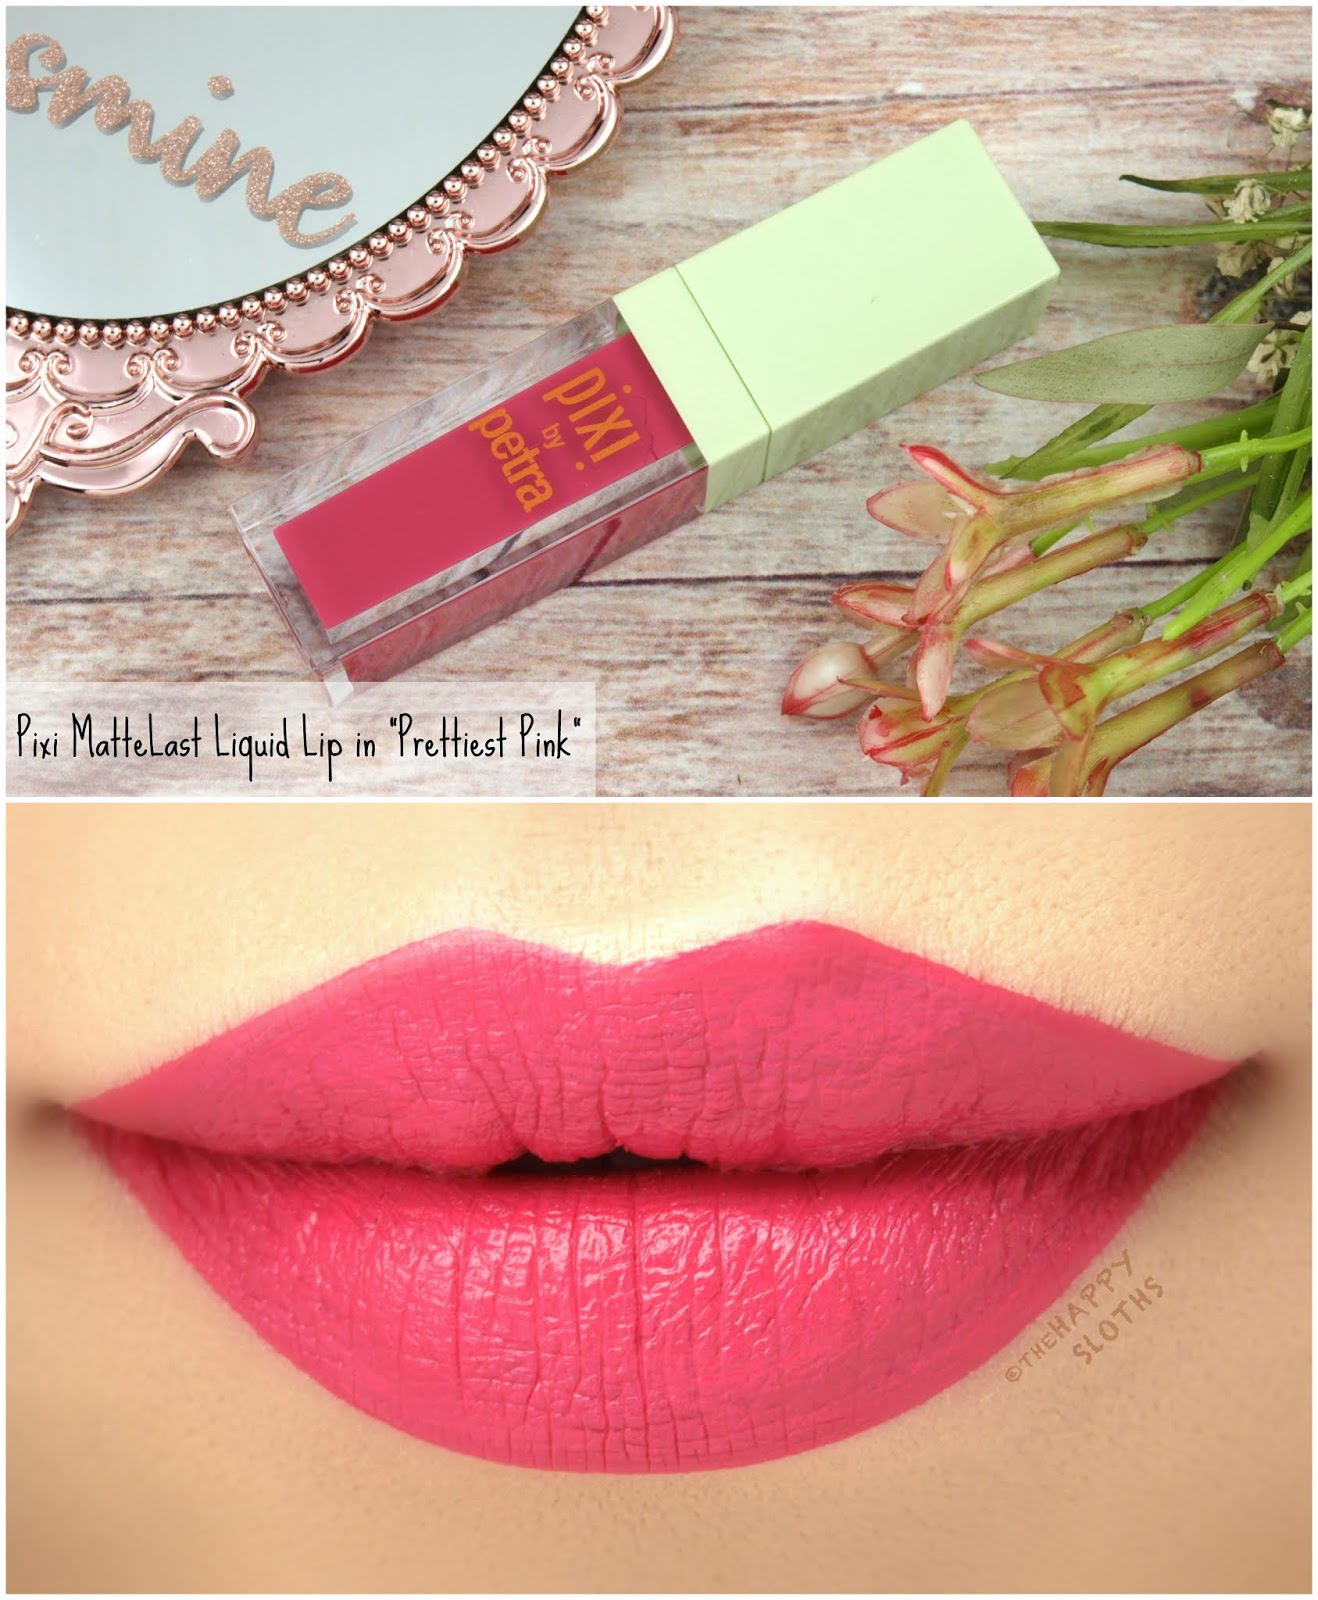 "Pixi | MatteLast Liquid Lip in ""Prettiest Pink"": Review and Swatches"